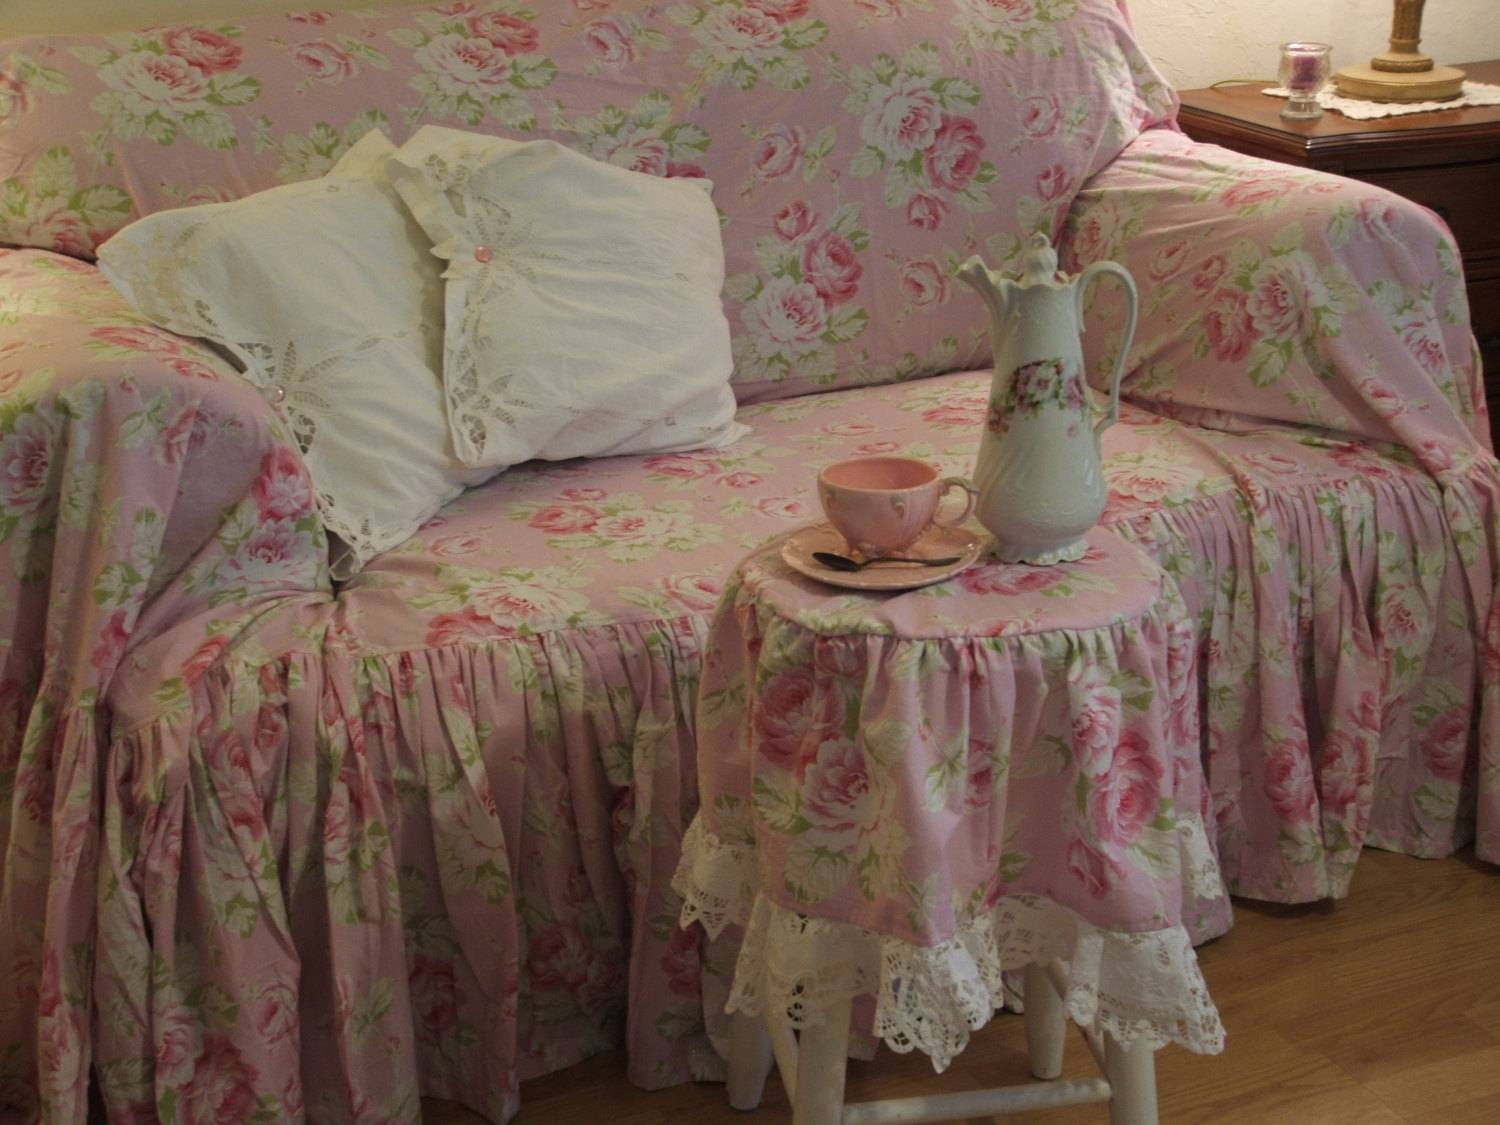 Shabby Chic Sofa Bed - Fjellkjeden inside Shabby Chic Sofa Slipcovers (Image 9 of 15)